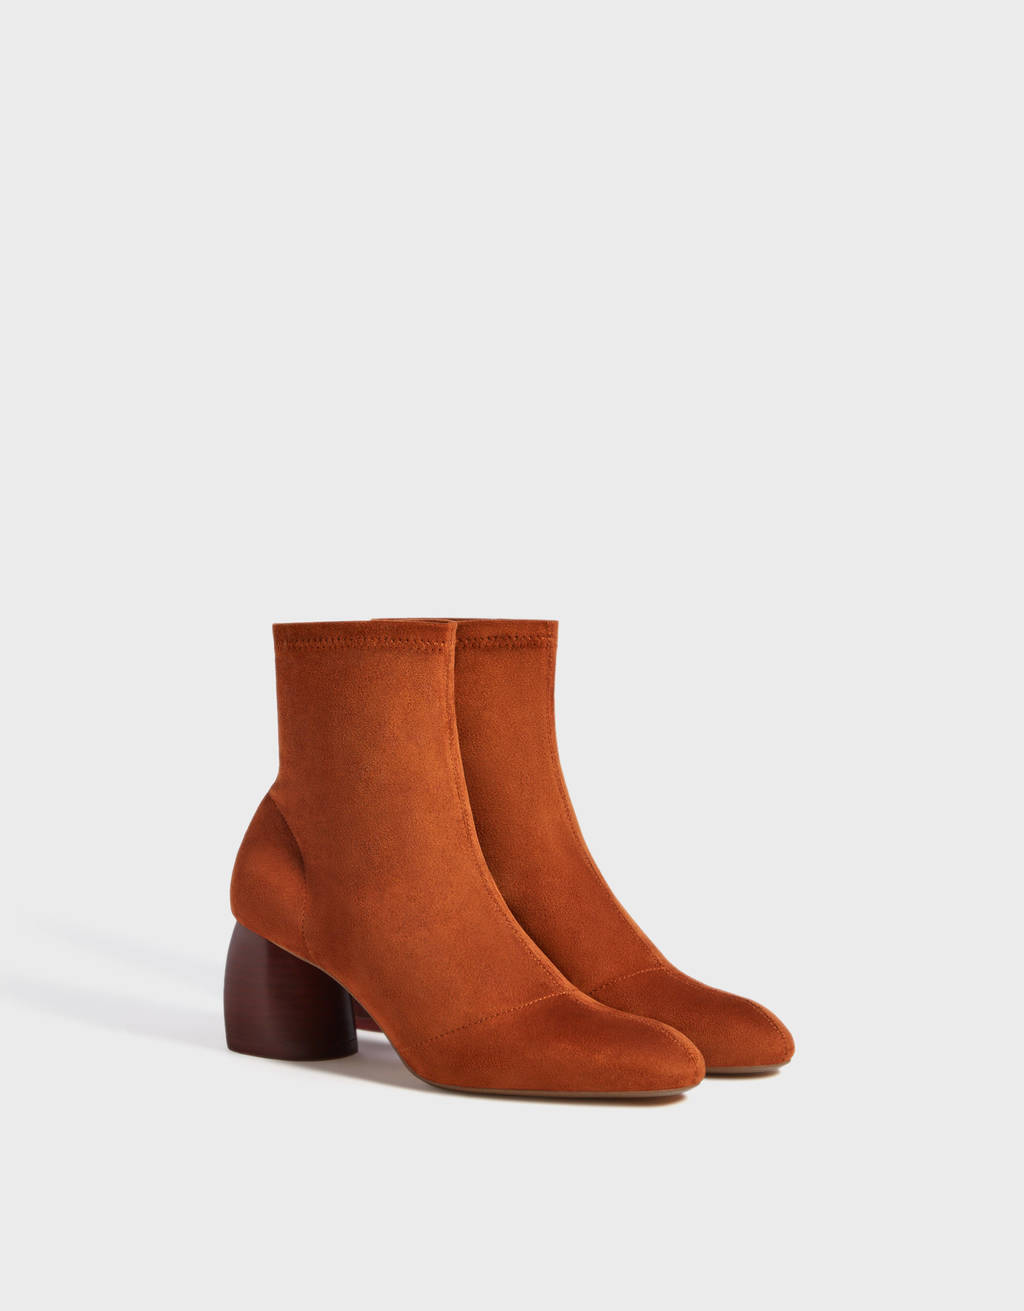 Chaussures pour femme Automne 2019 | Bershka